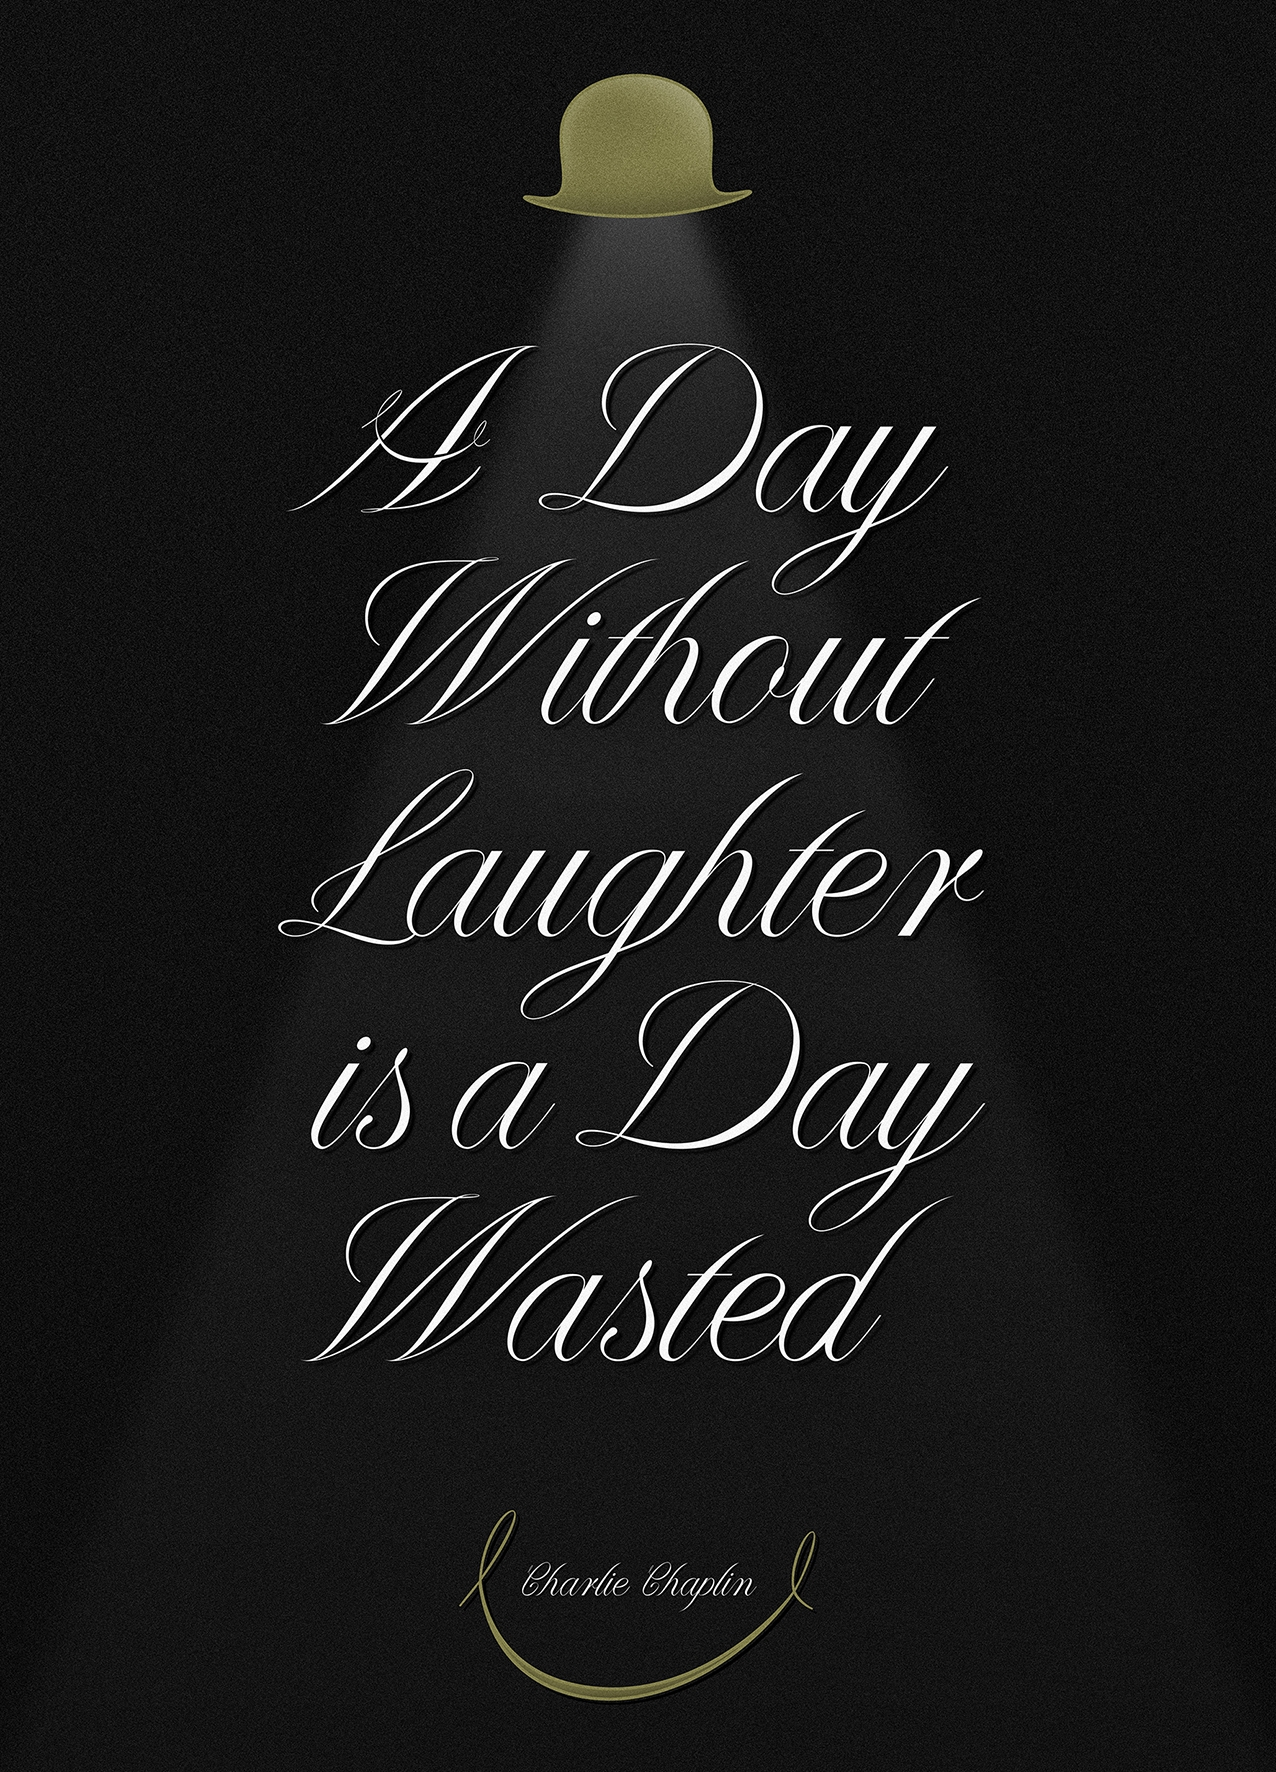 day laughter wasted. Poster, Pa - rono-1165 | ello